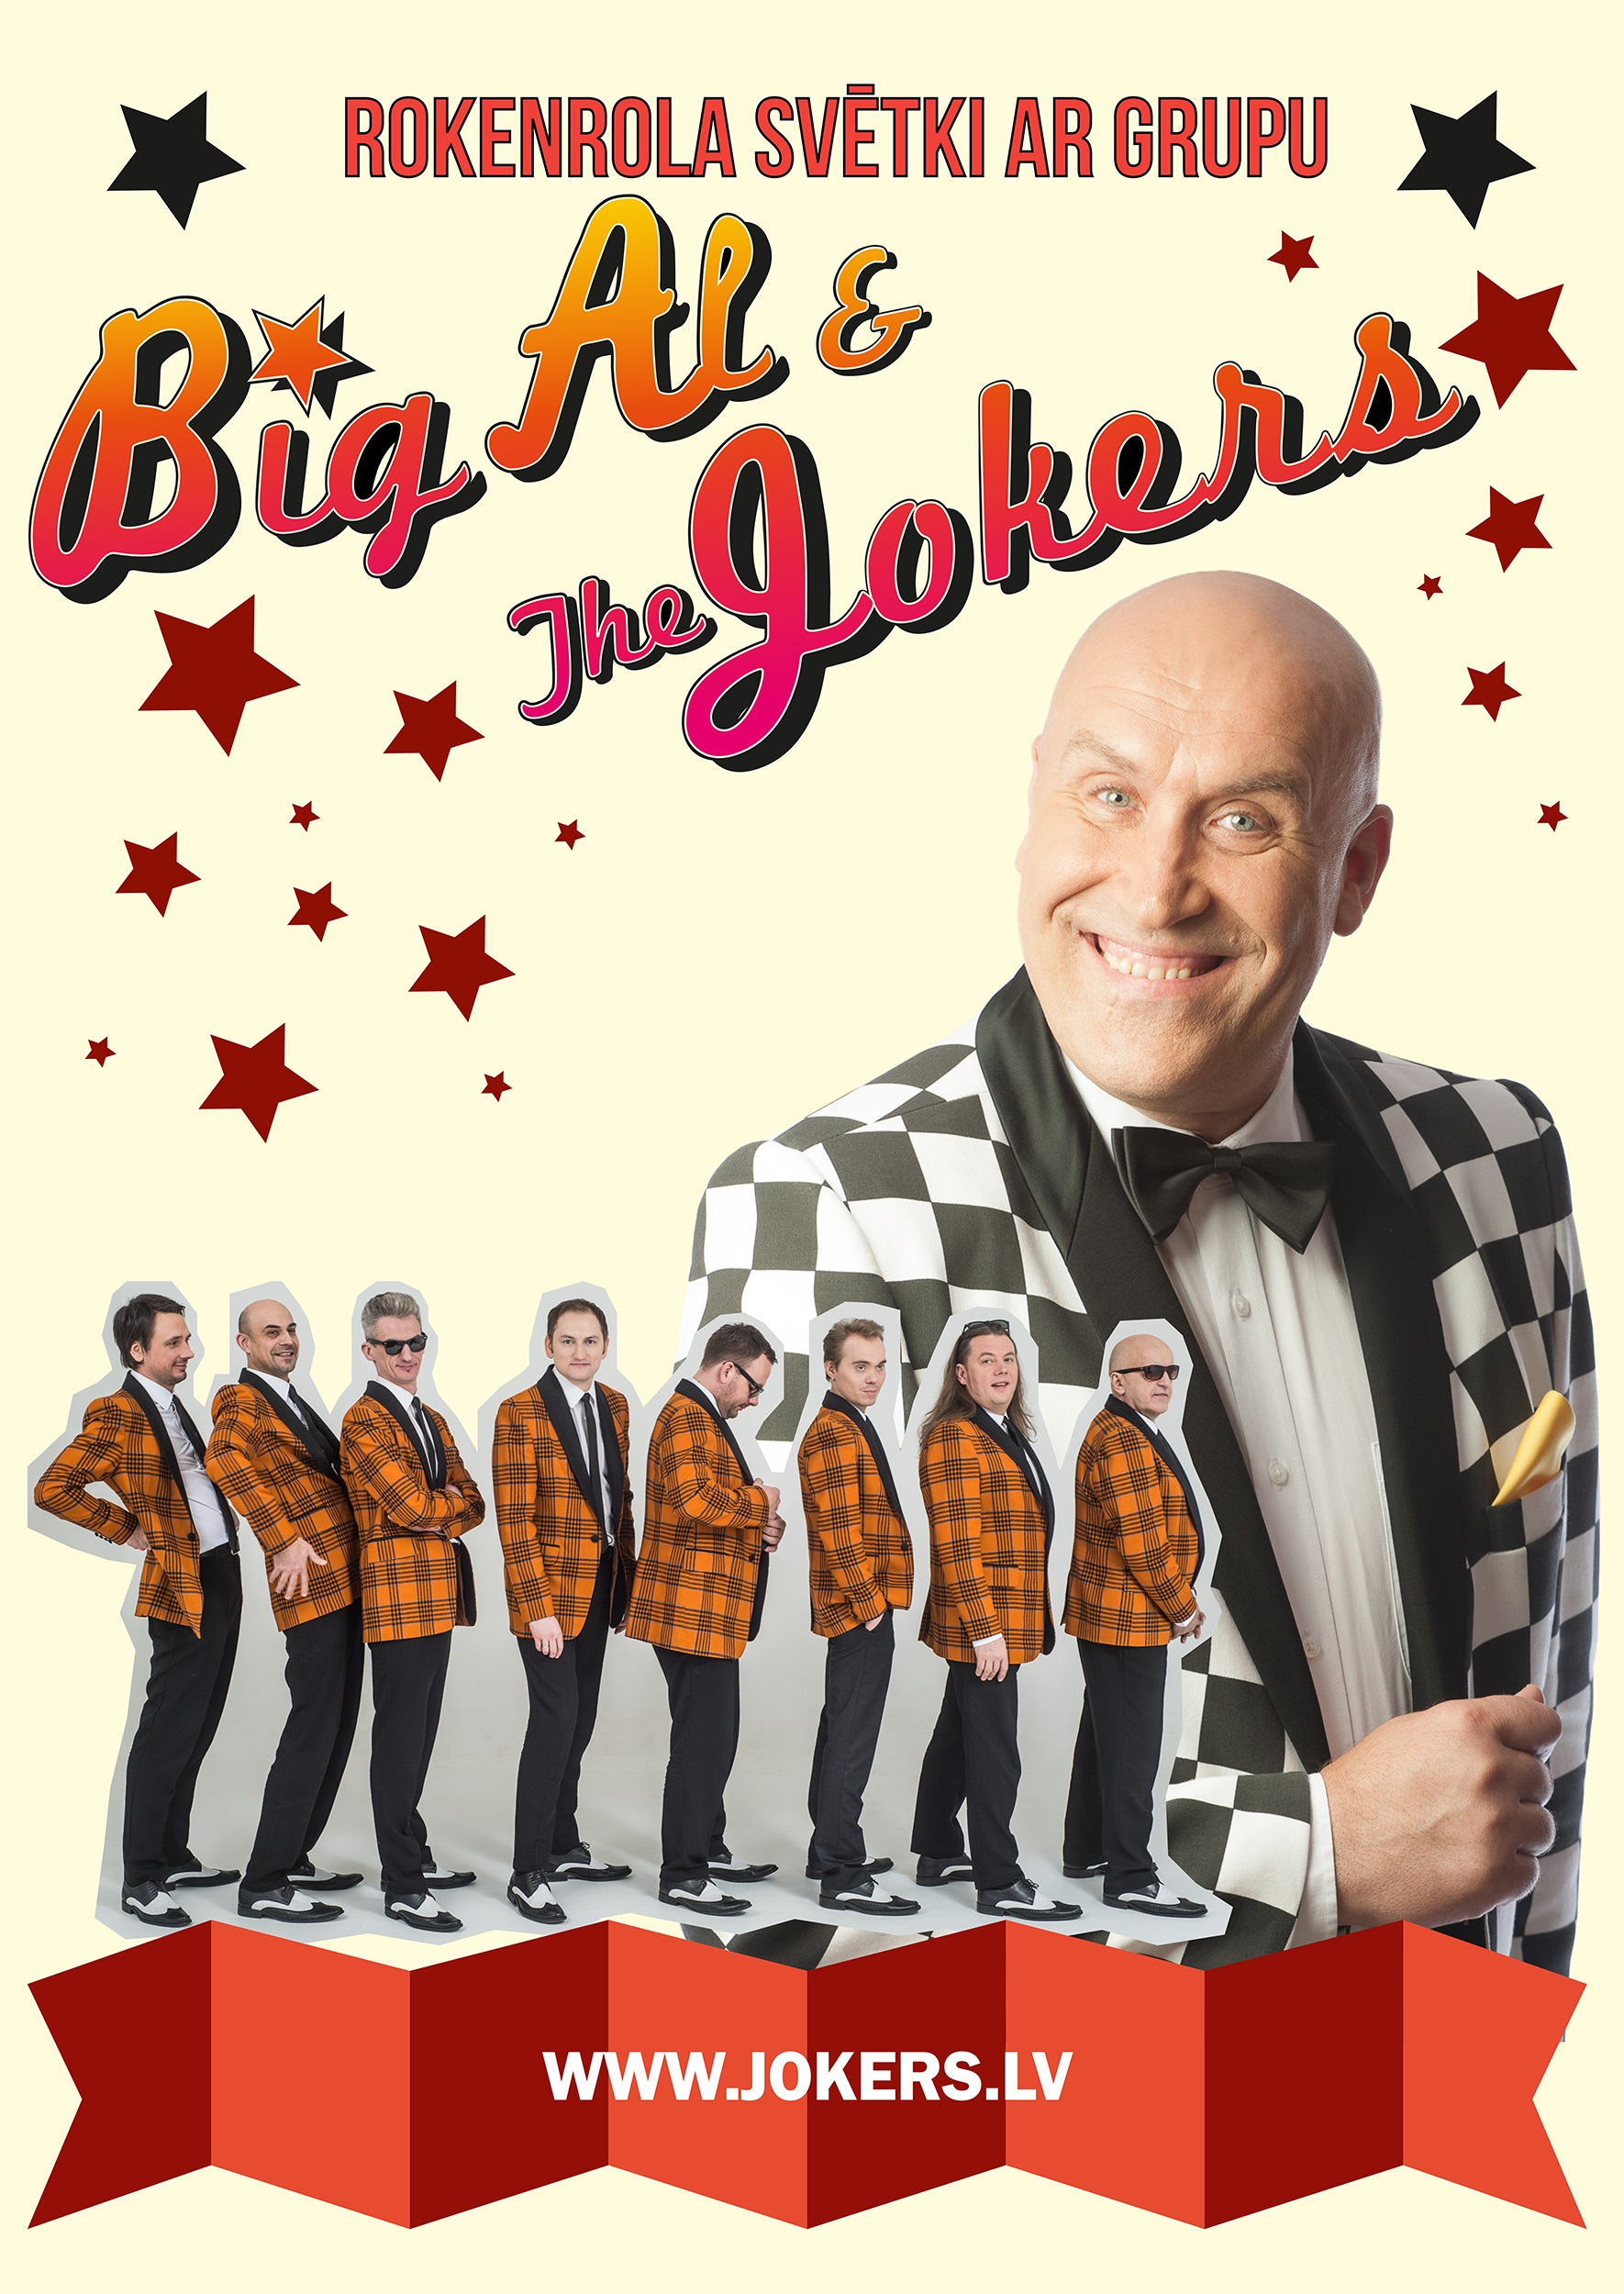 Big Al & The Jokers 2017